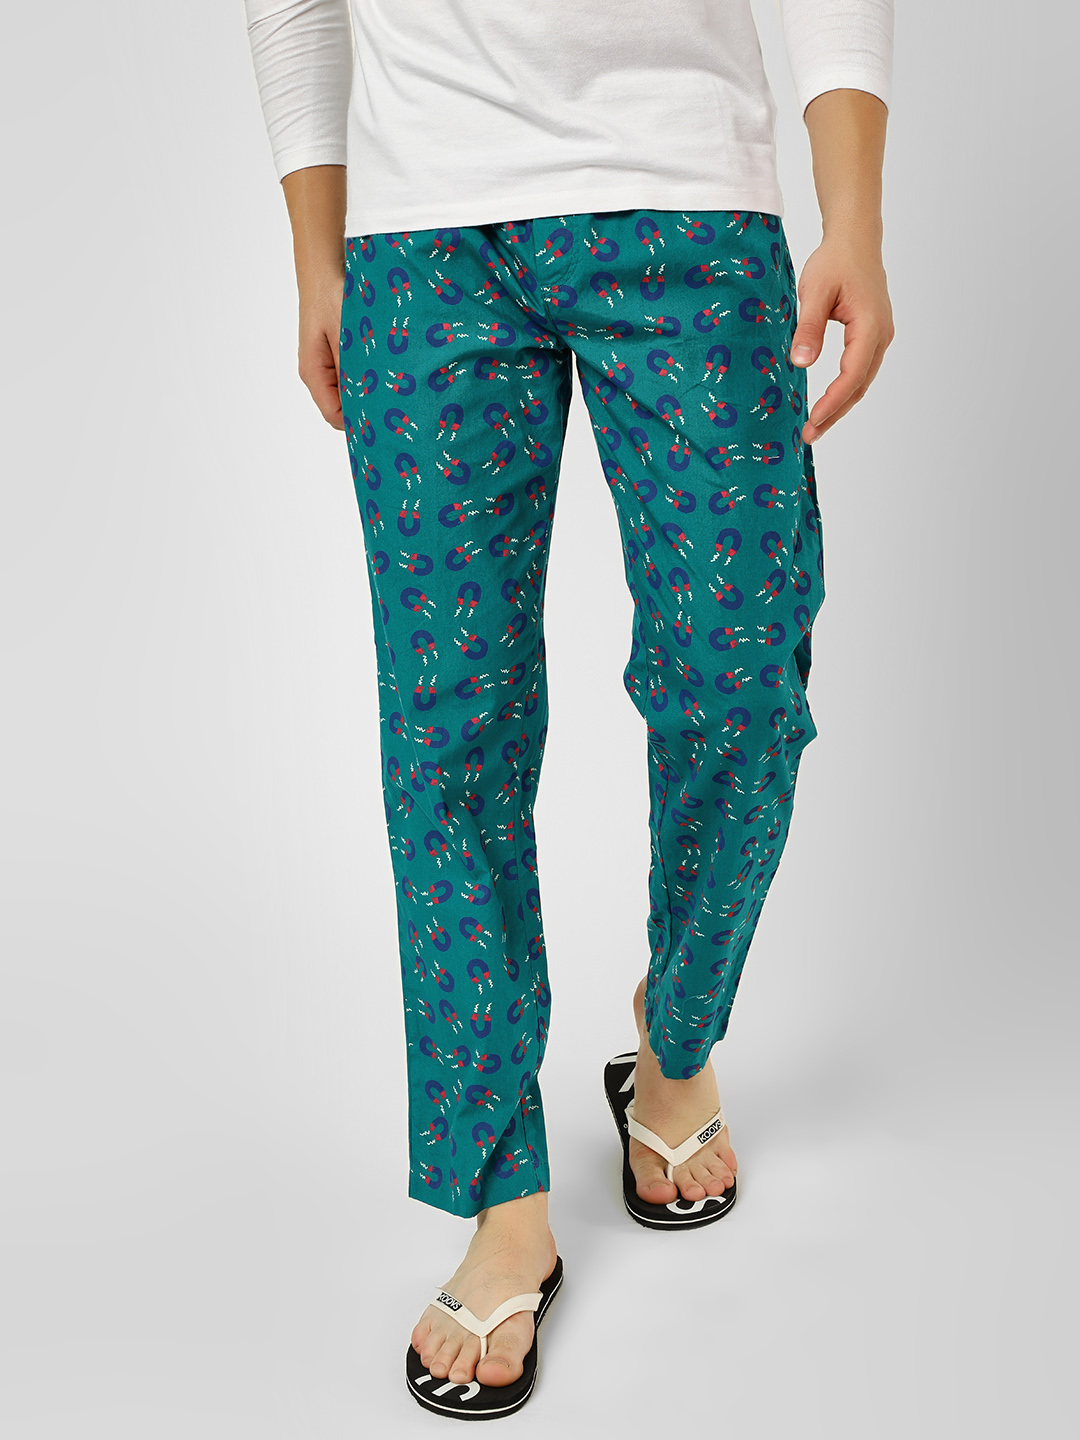 Jack & Jones Green Magnet Print Lounge Pants 1